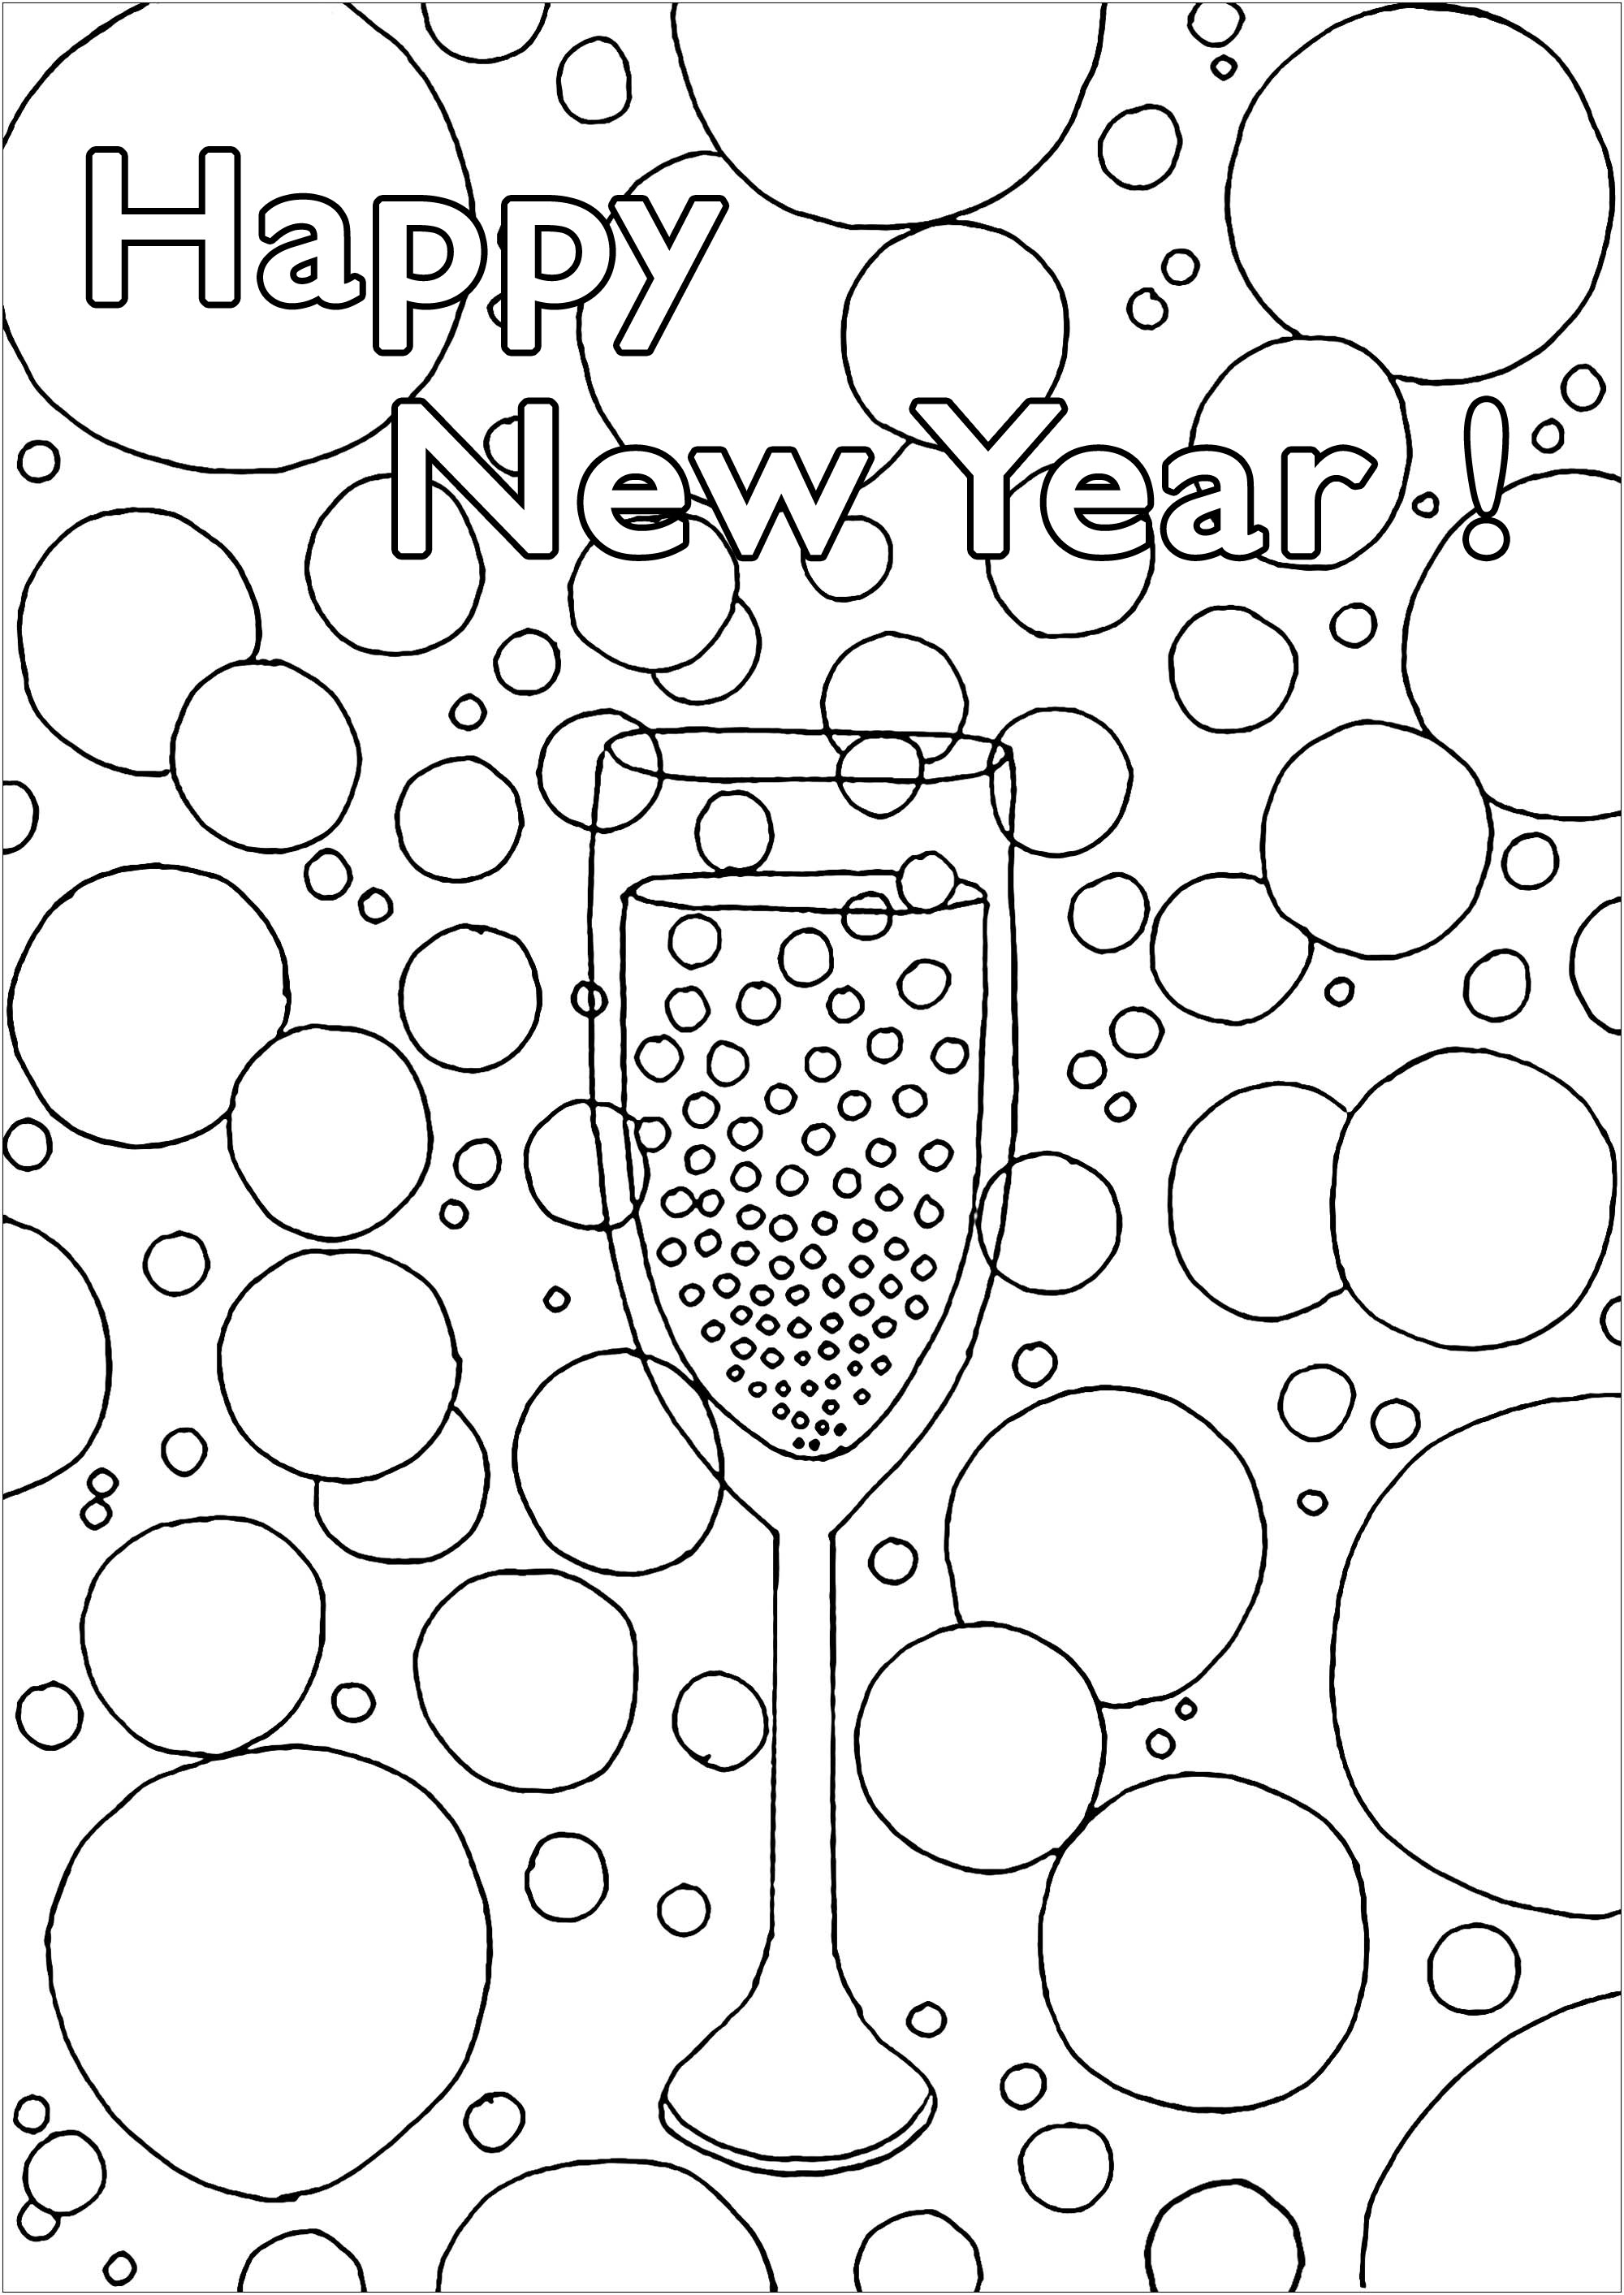 Happy New Year ! Color this glass of champagne and all these bubbles ...